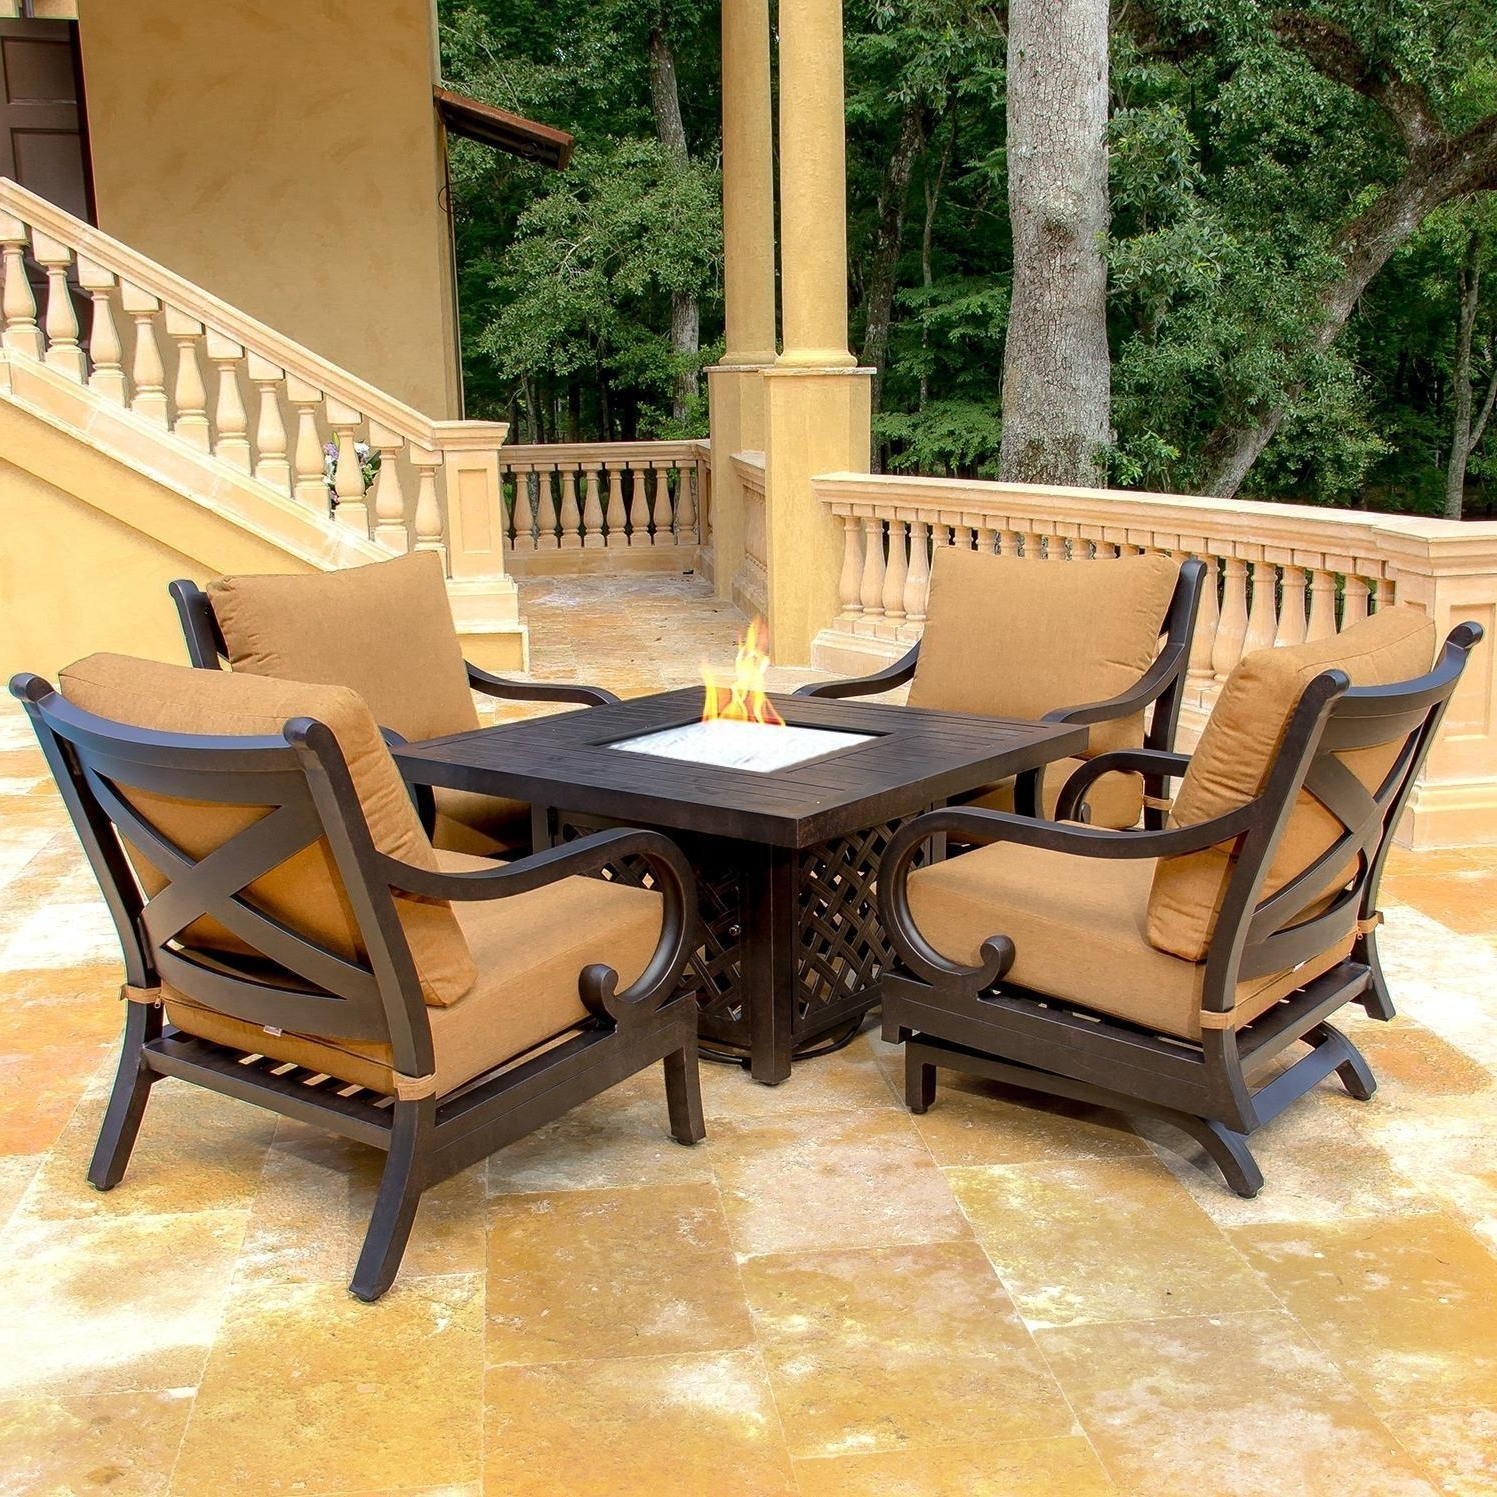 Patio Conversation Sets With Gas Fire Pit Intended For Popular 11 Patio Furniture Fire Pit (View 12 of 20)